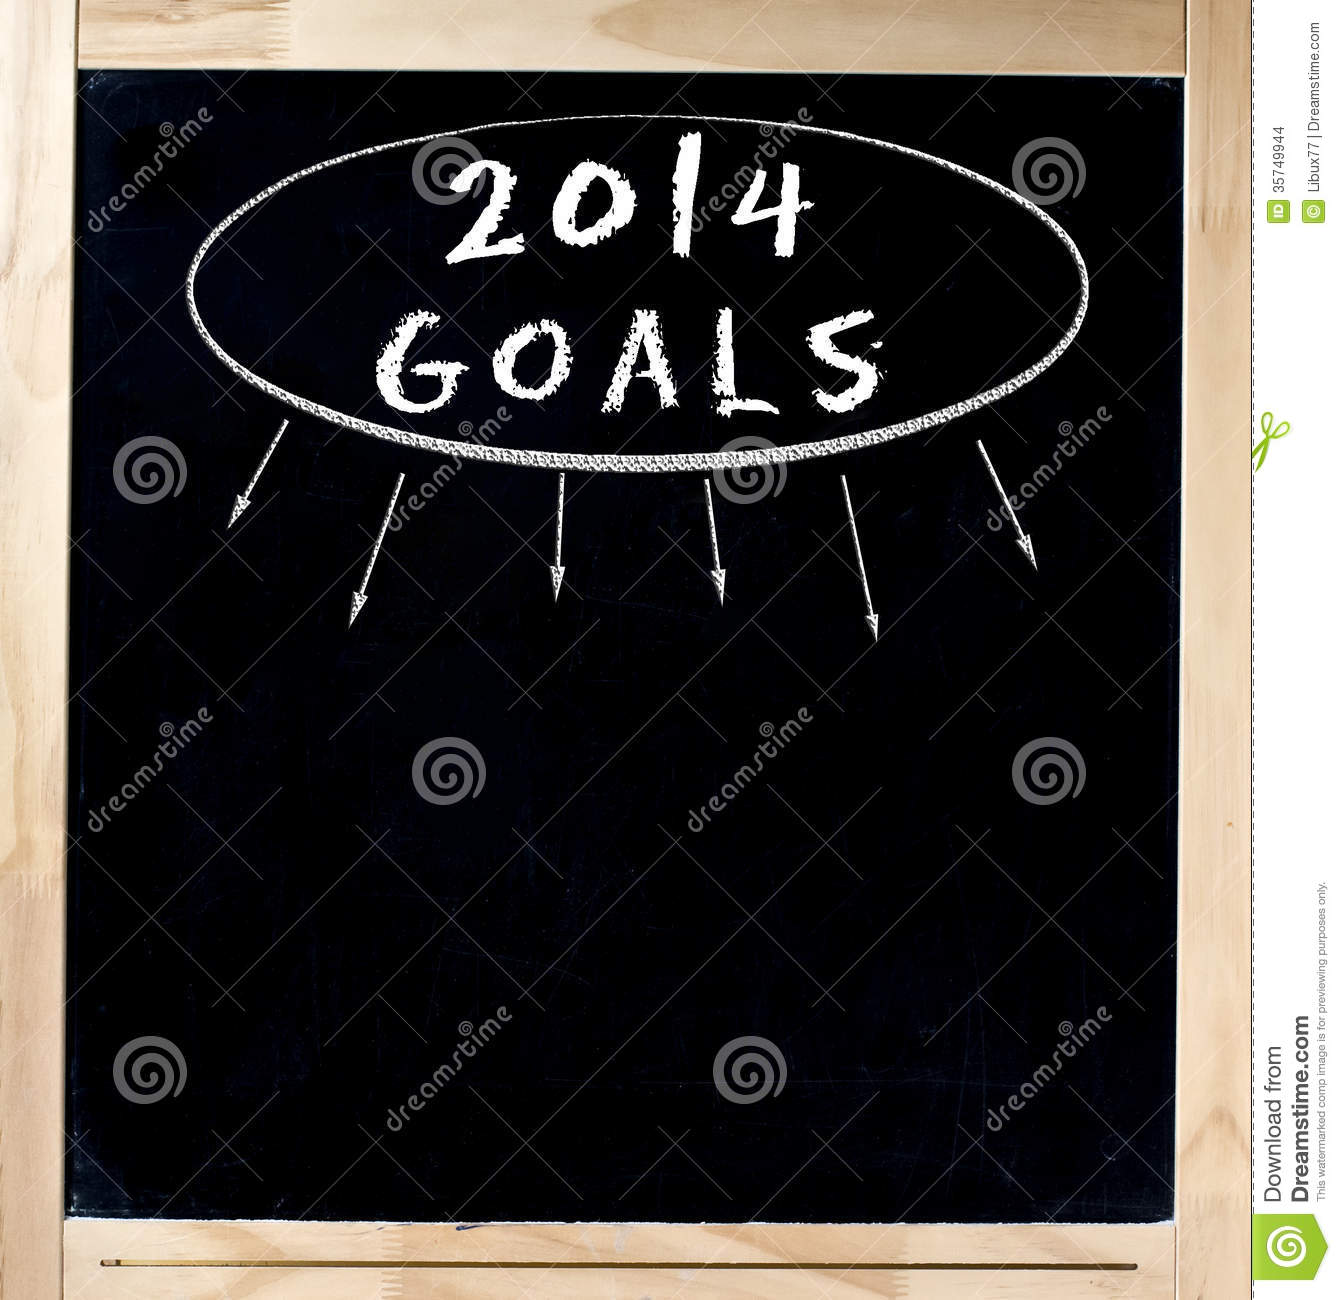 Goals Title On Chalkboard Stock Images